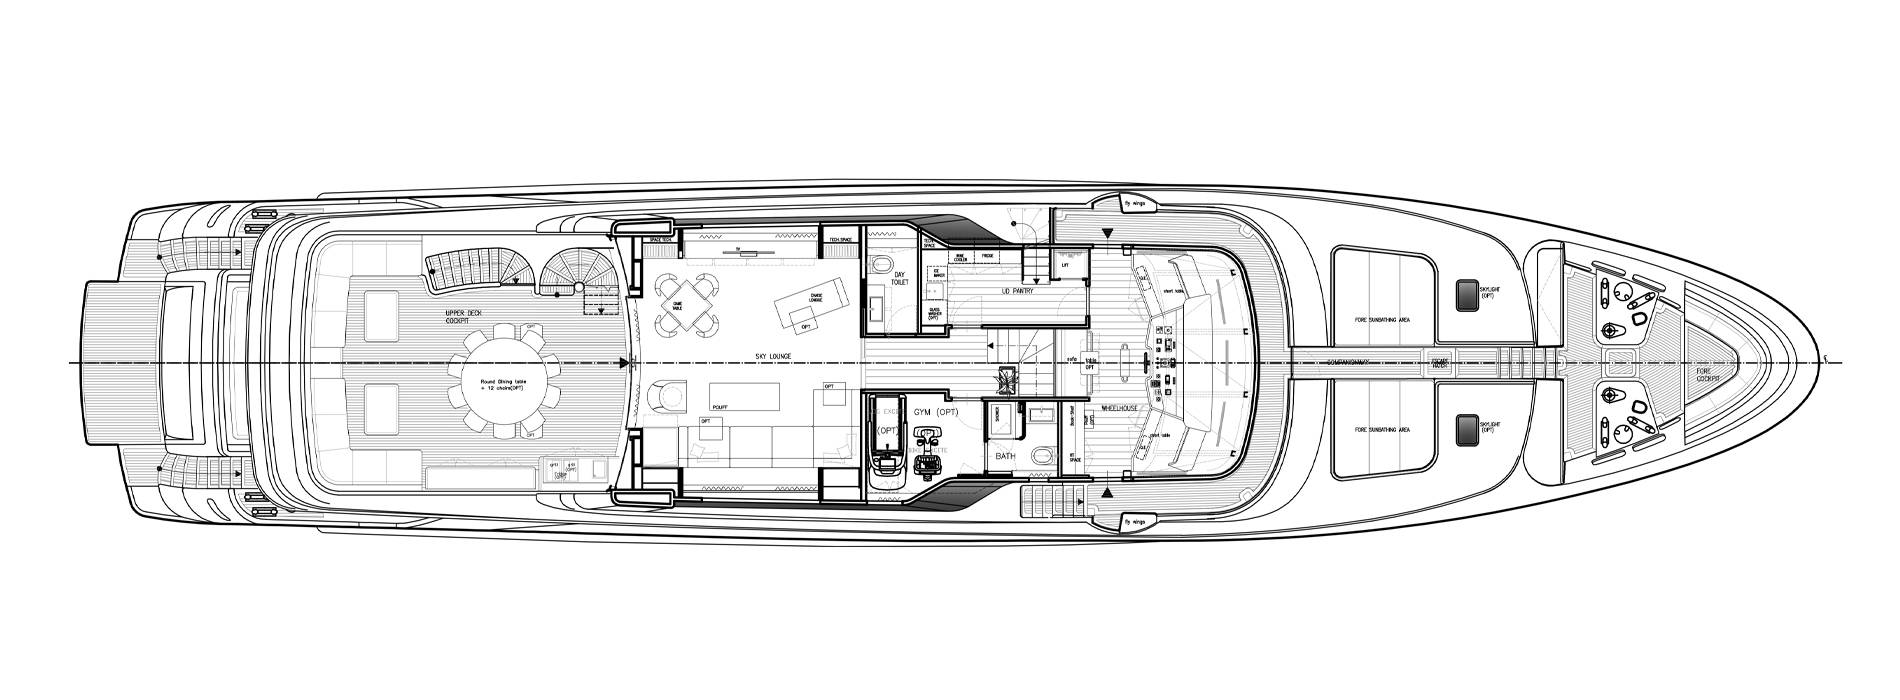 Sanlorenzo Yachts SD122-27 under offer Upper deck